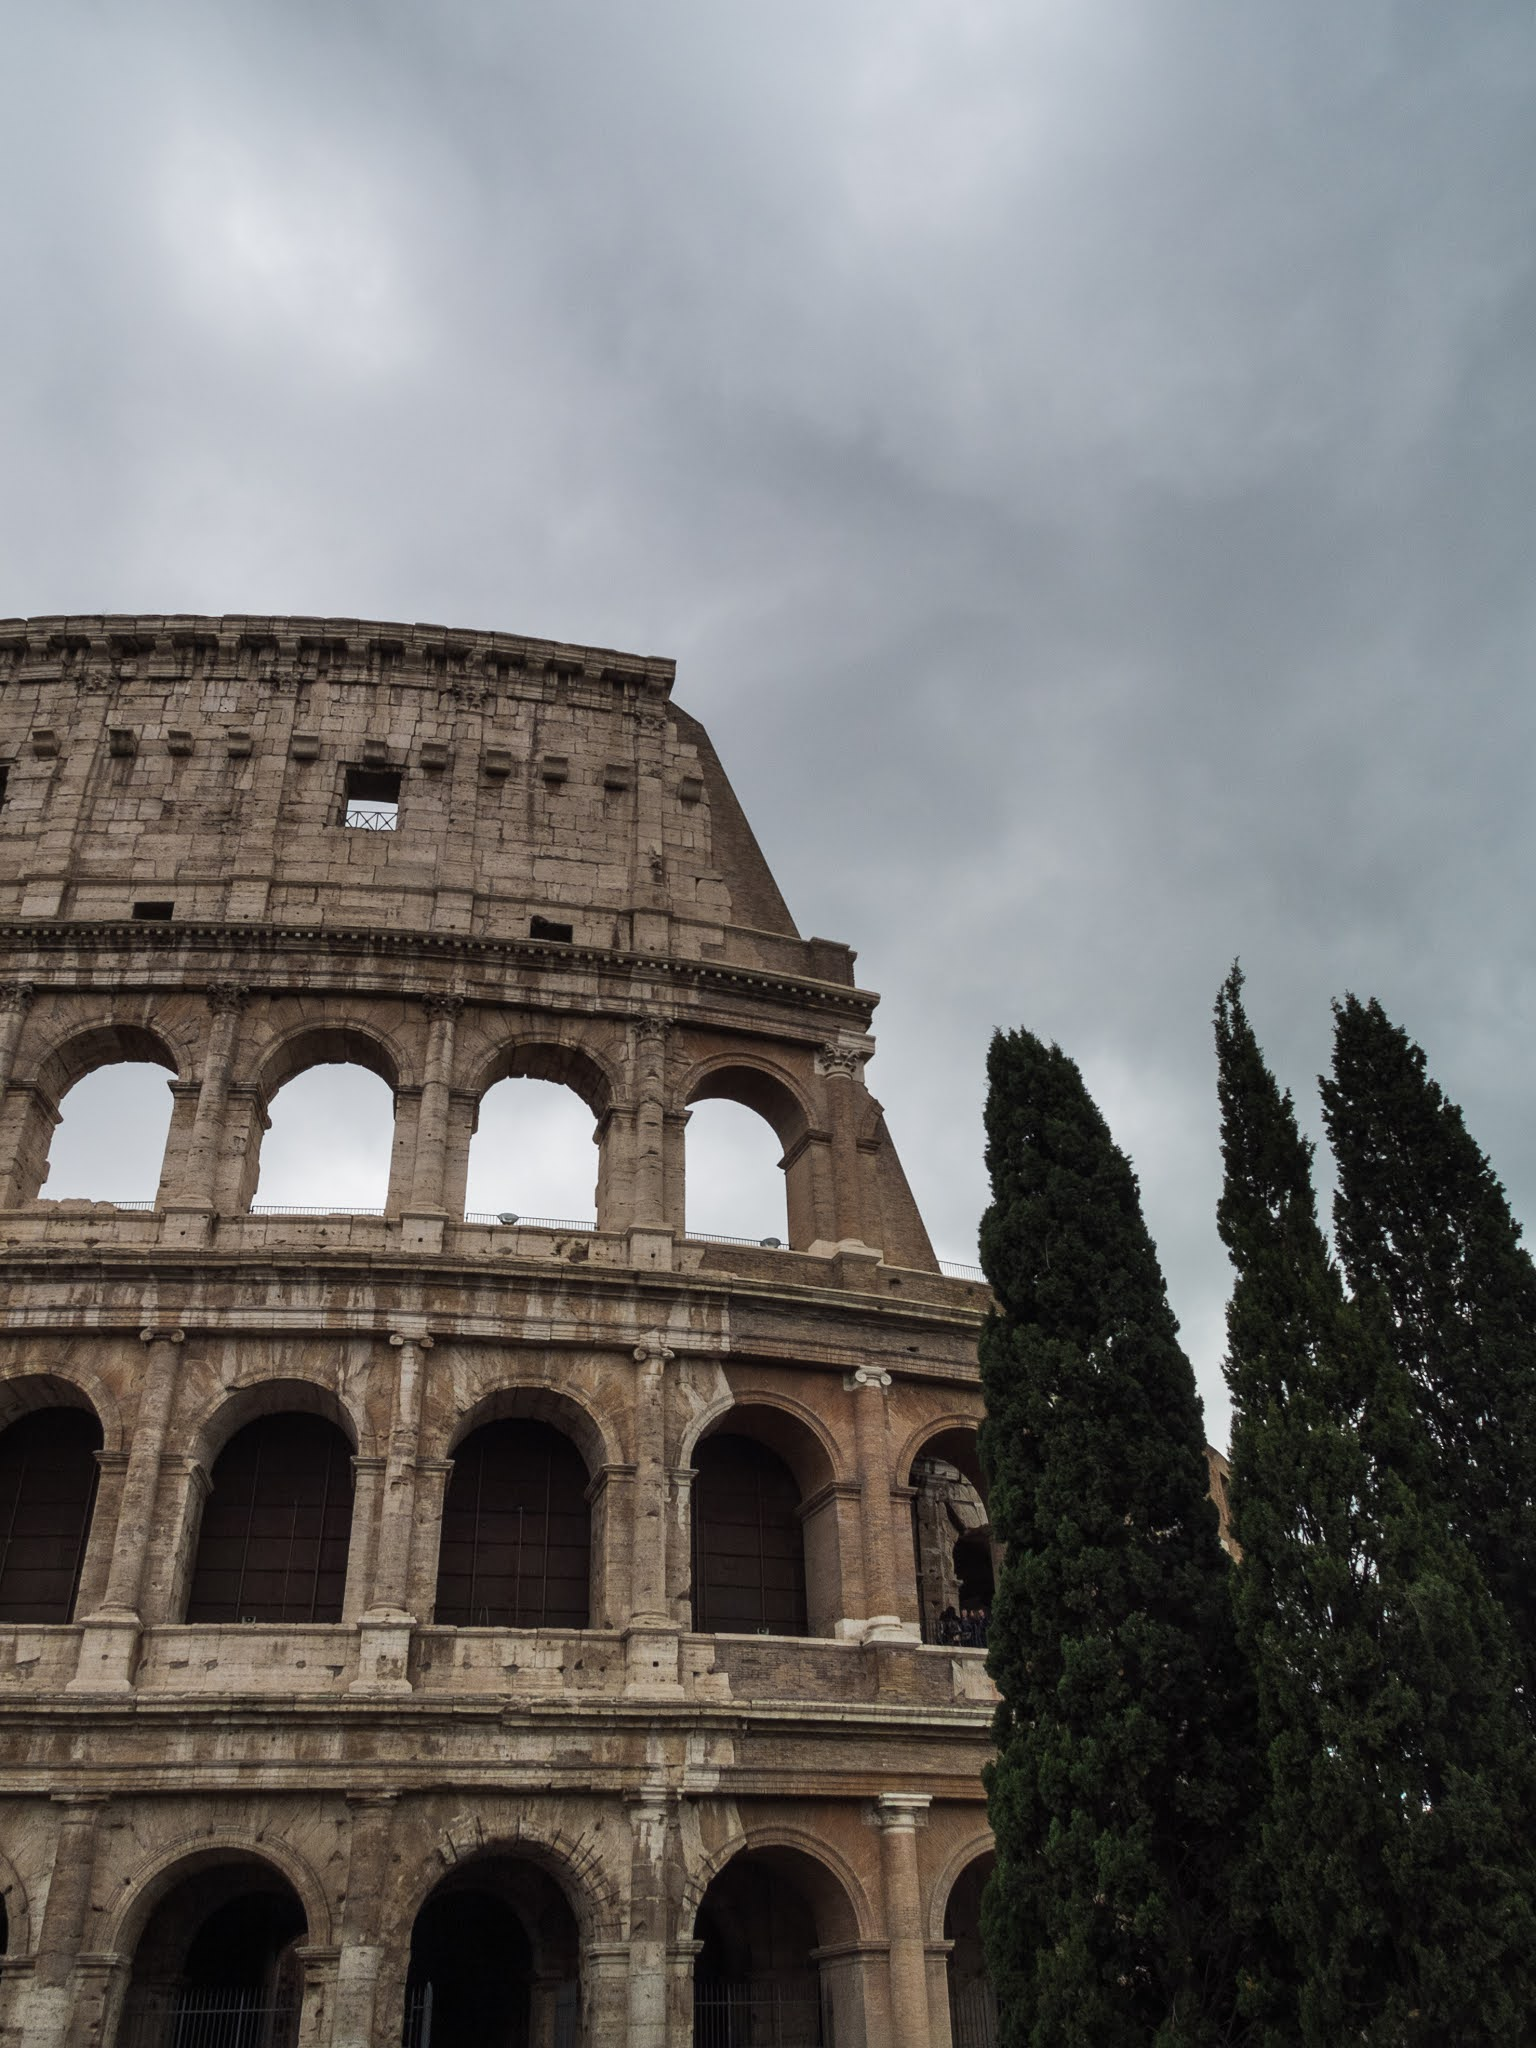 A grey sky above the Colosseum and three Cypress trees.